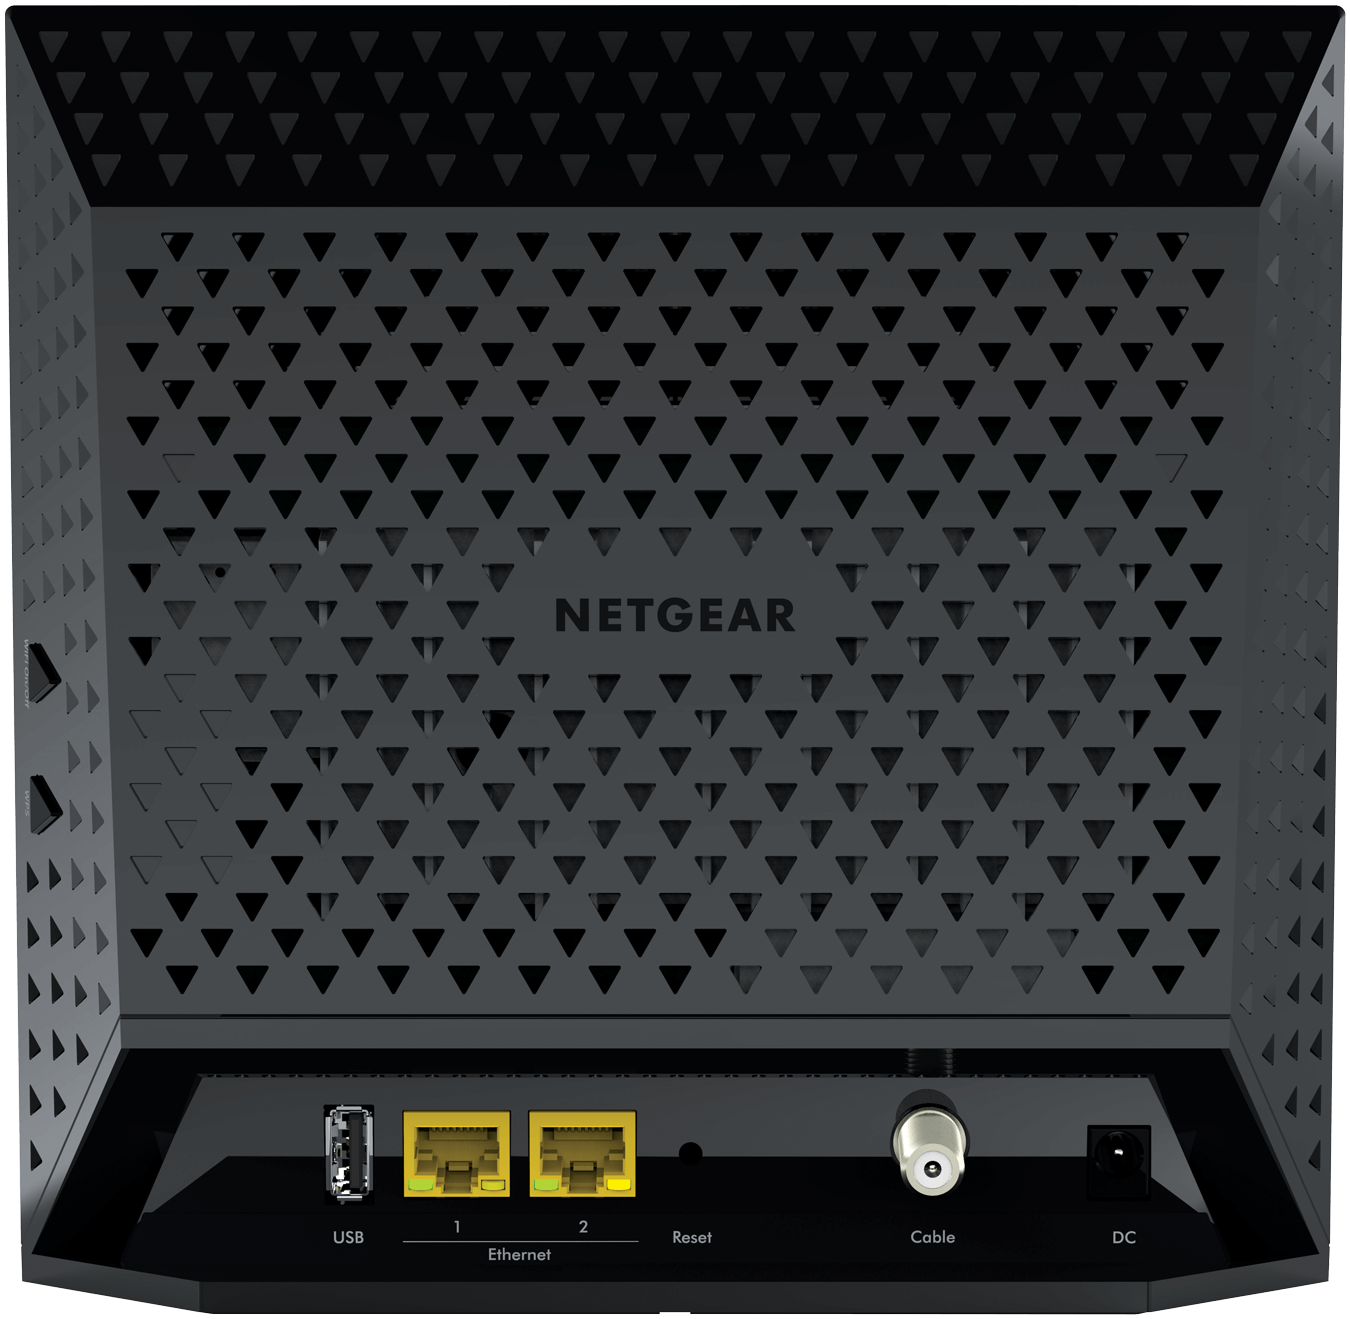 C6250 | Cable Modems & Routers | Networking | Home | NETGEAR